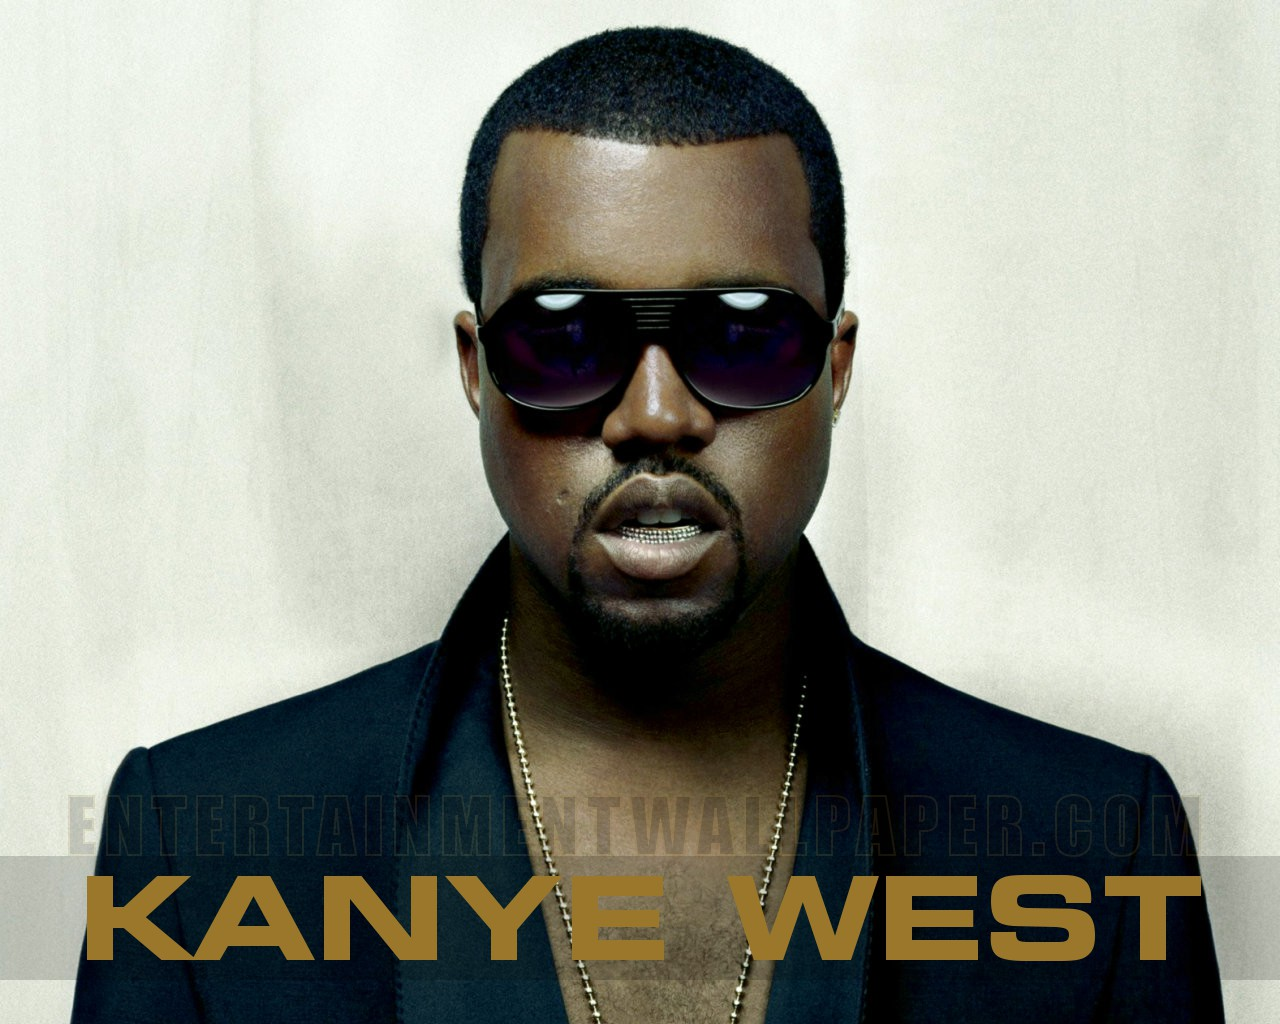 http://hiphopsnob.files.wordpress.com/2013/05/kanye-west33.jpg